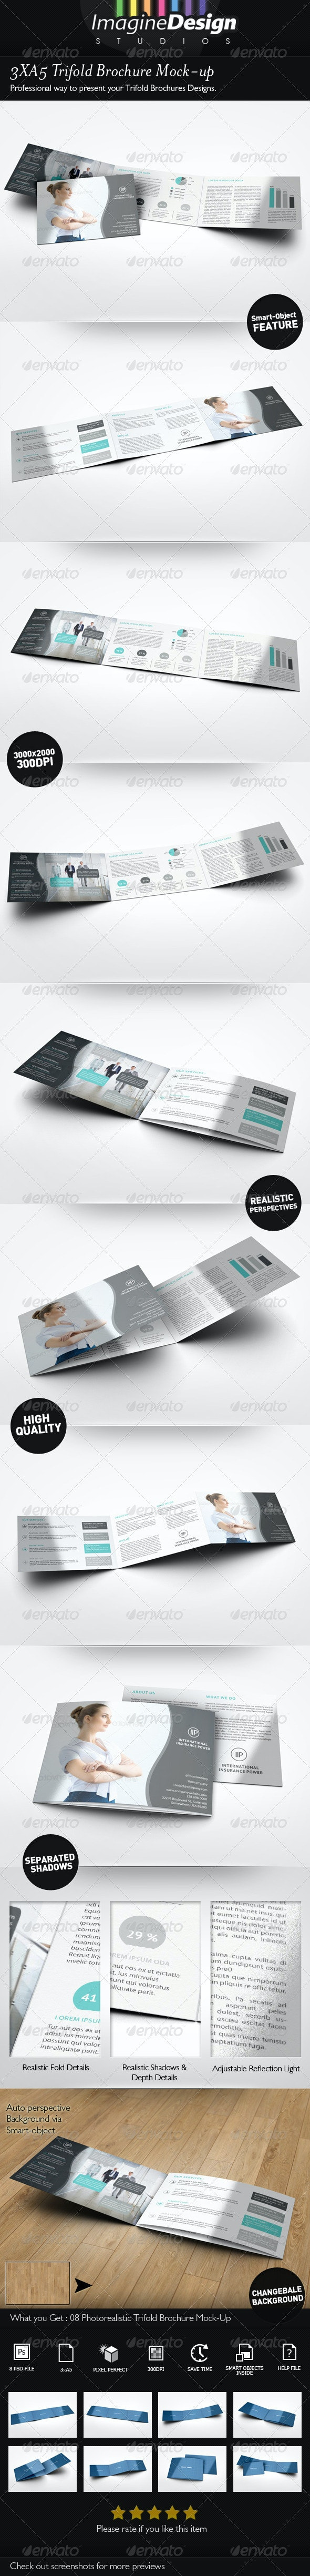 3xA5 Trifold Brochure Mock-up Landscape - Brochures Print